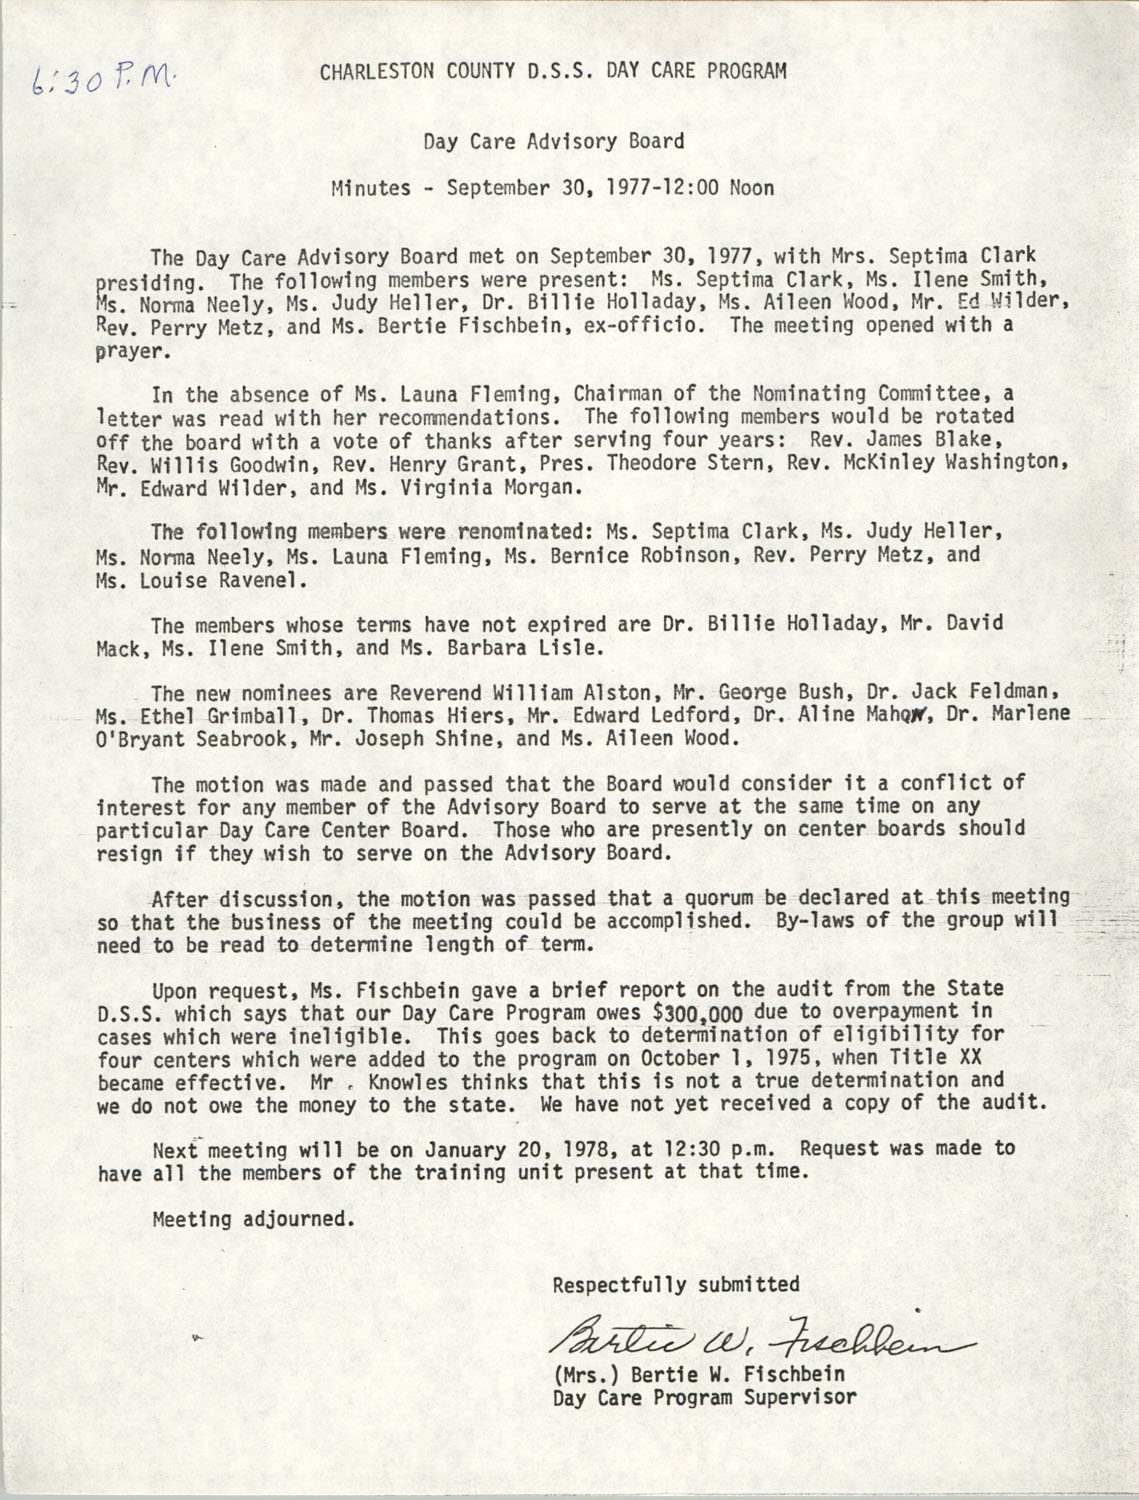 Minutes, Charleston County Department of Social Services Day Care Program, Day Care Advisory Board, September 30, 1977